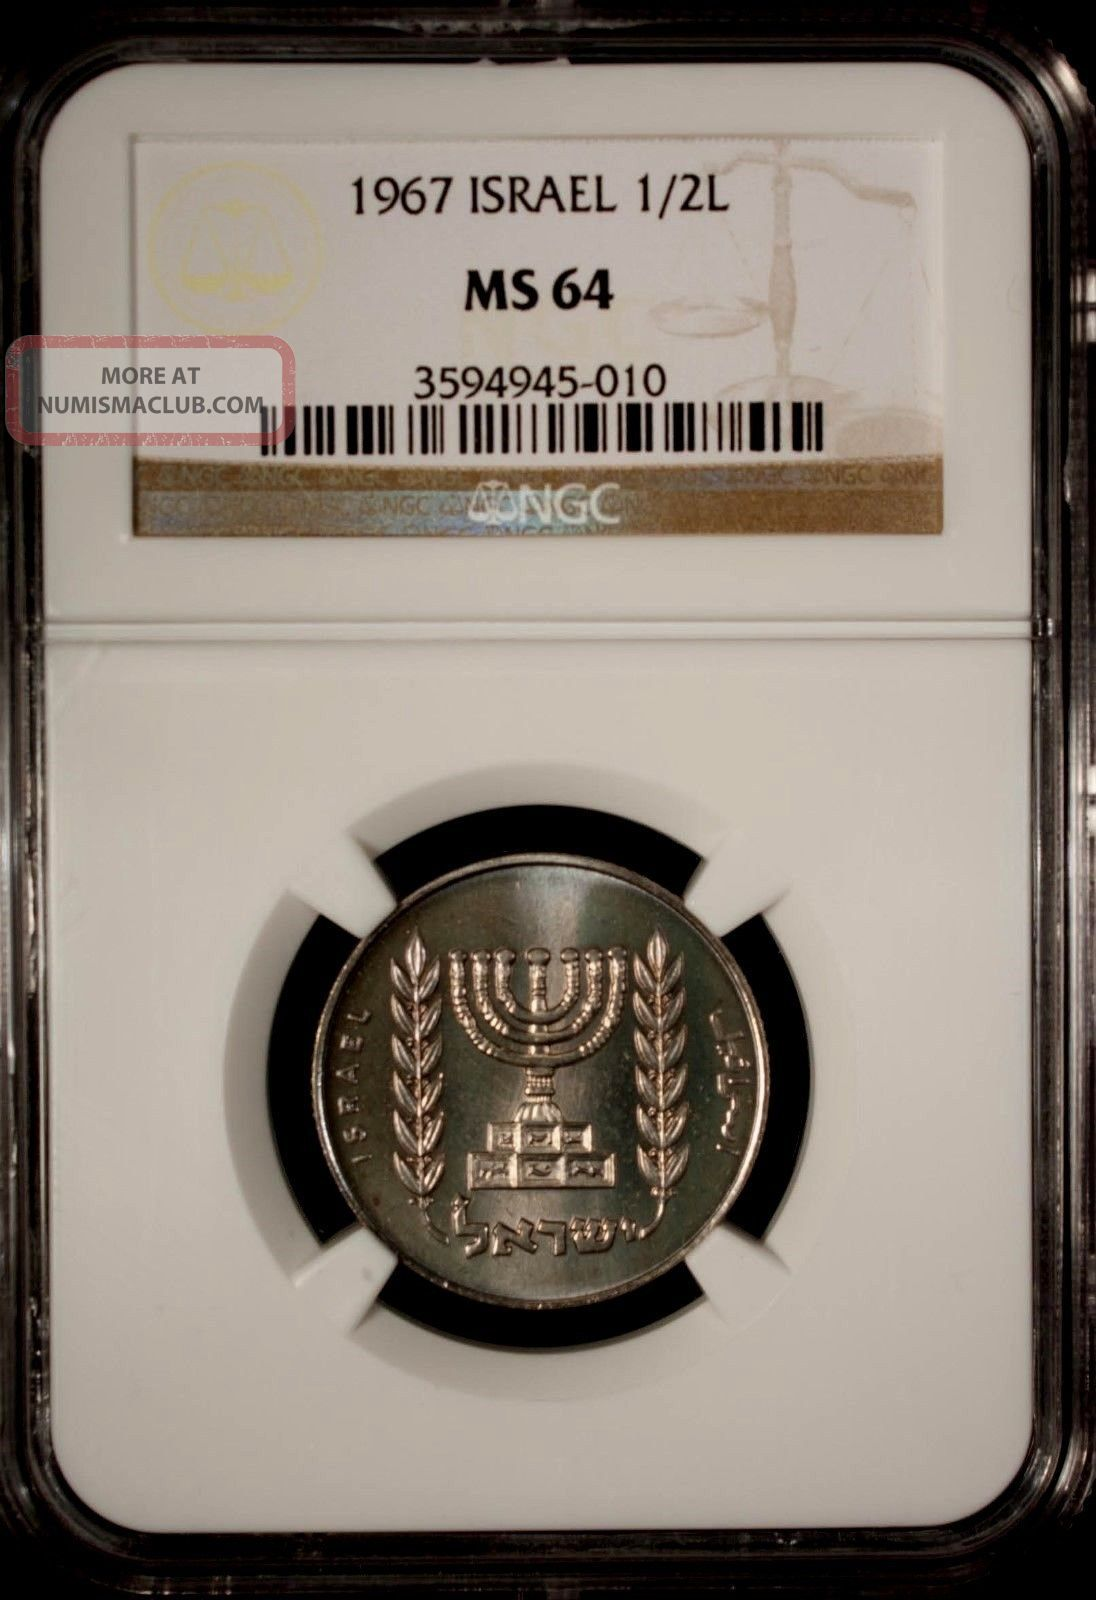 Israel 1967 1/2 Lirah Ngc Ms 64 Unc Copper Nickel Middle East photo